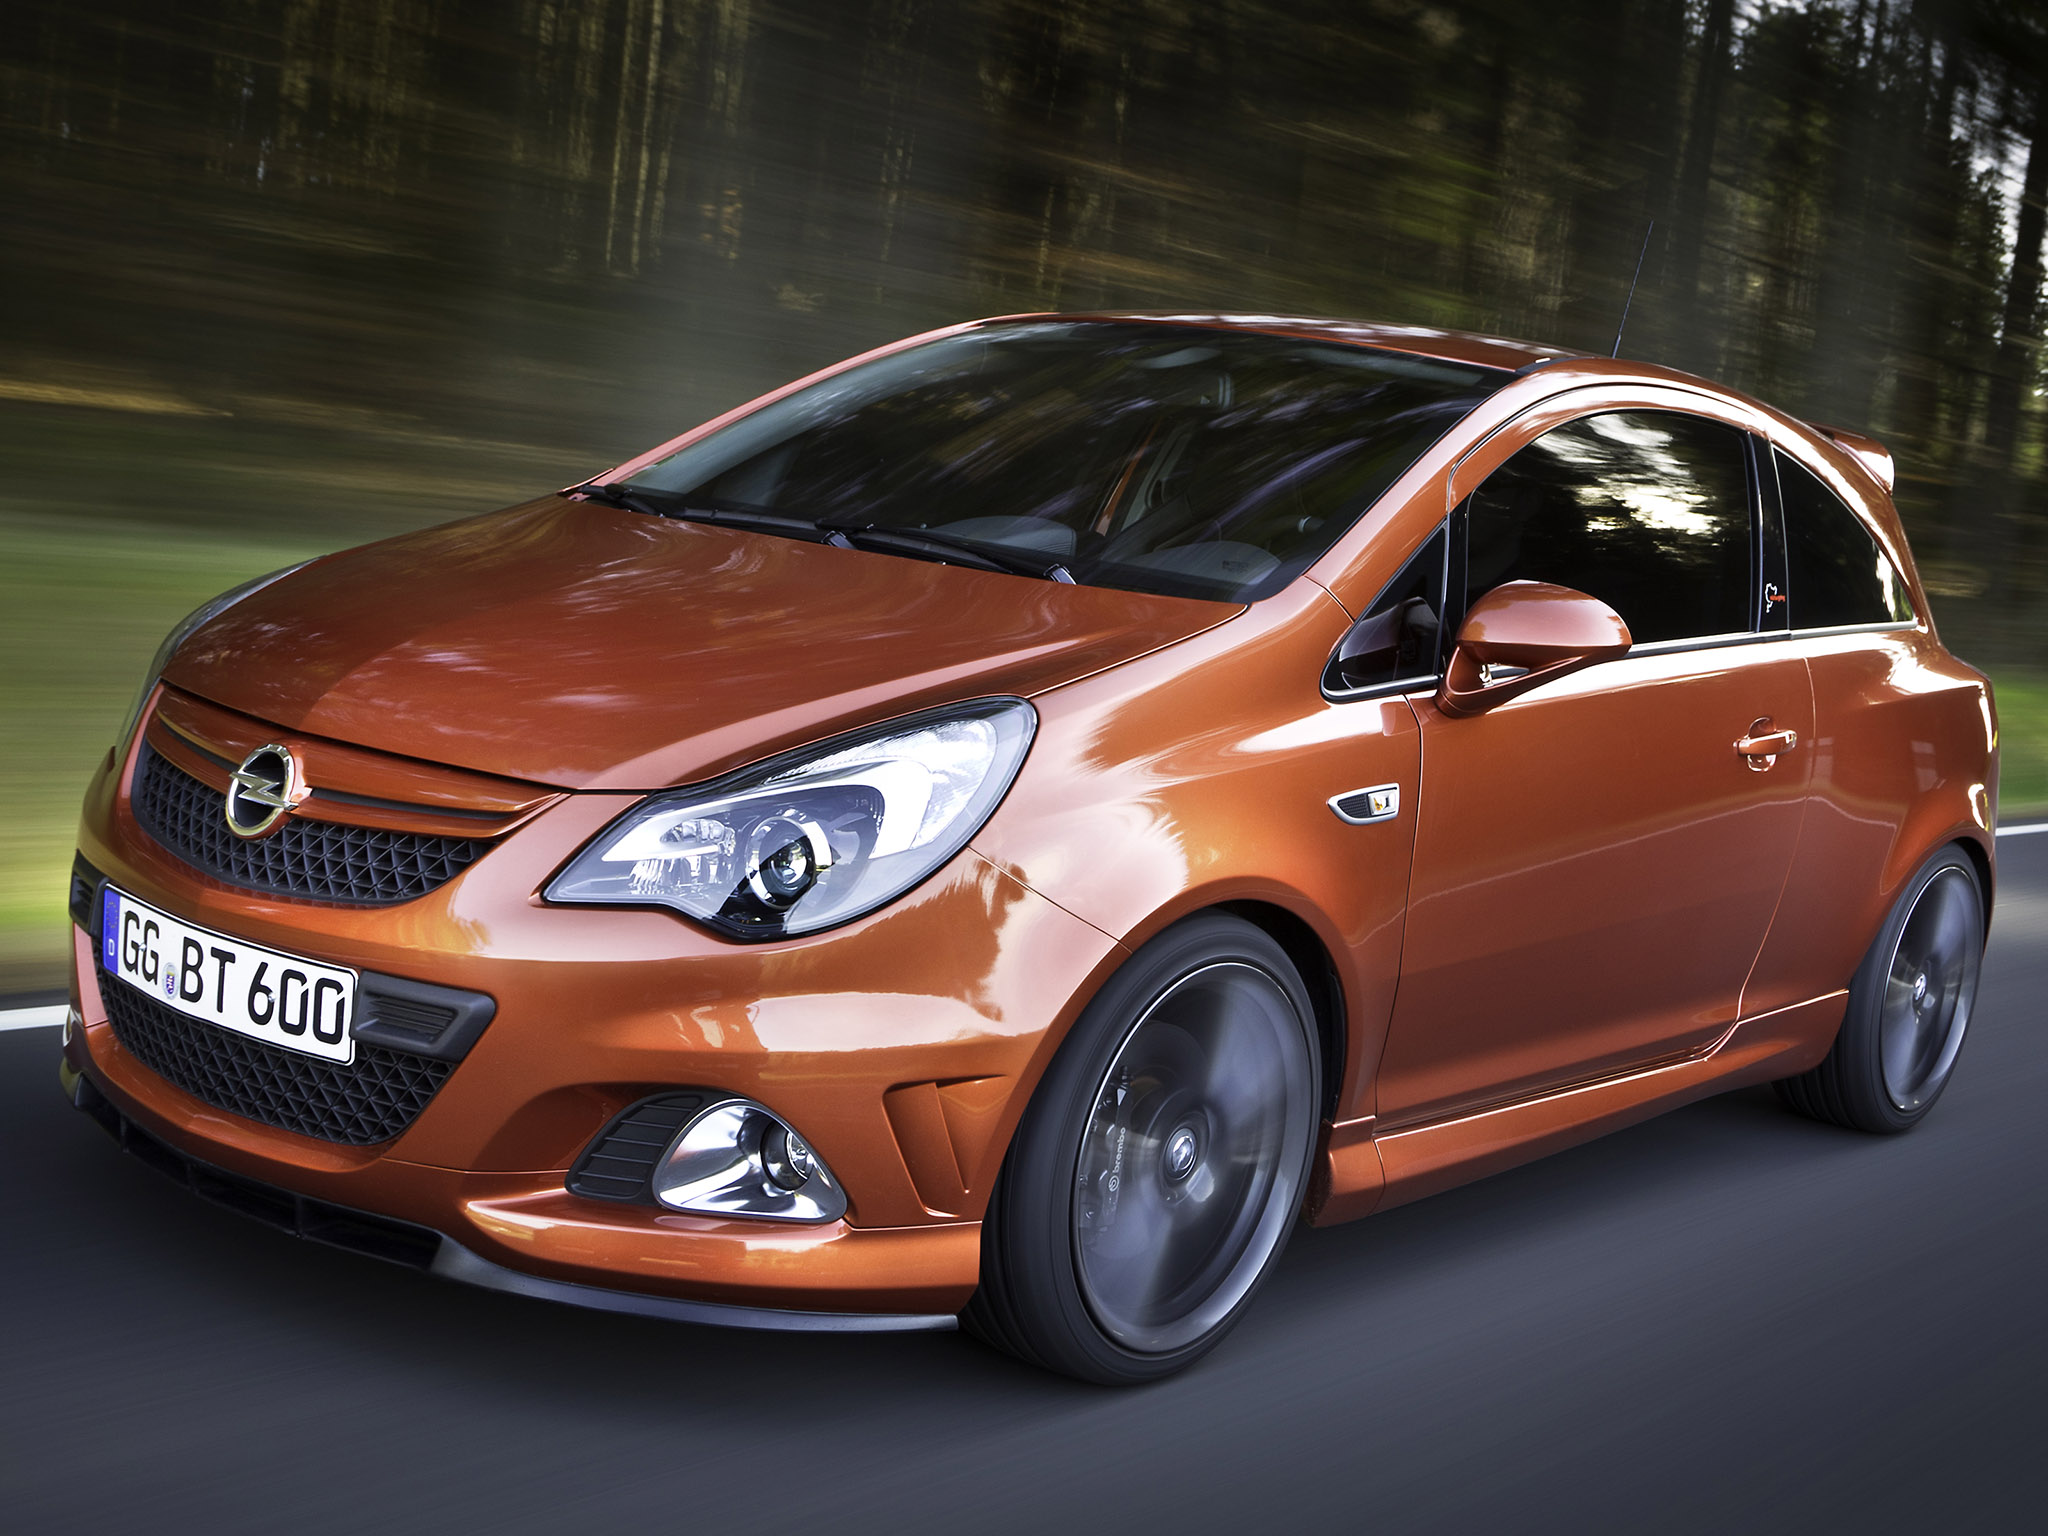 opel corsa opc nurburgring edition 2011 opel corsa opc nurburgring edition 2011 photo 13 car. Black Bedroom Furniture Sets. Home Design Ideas